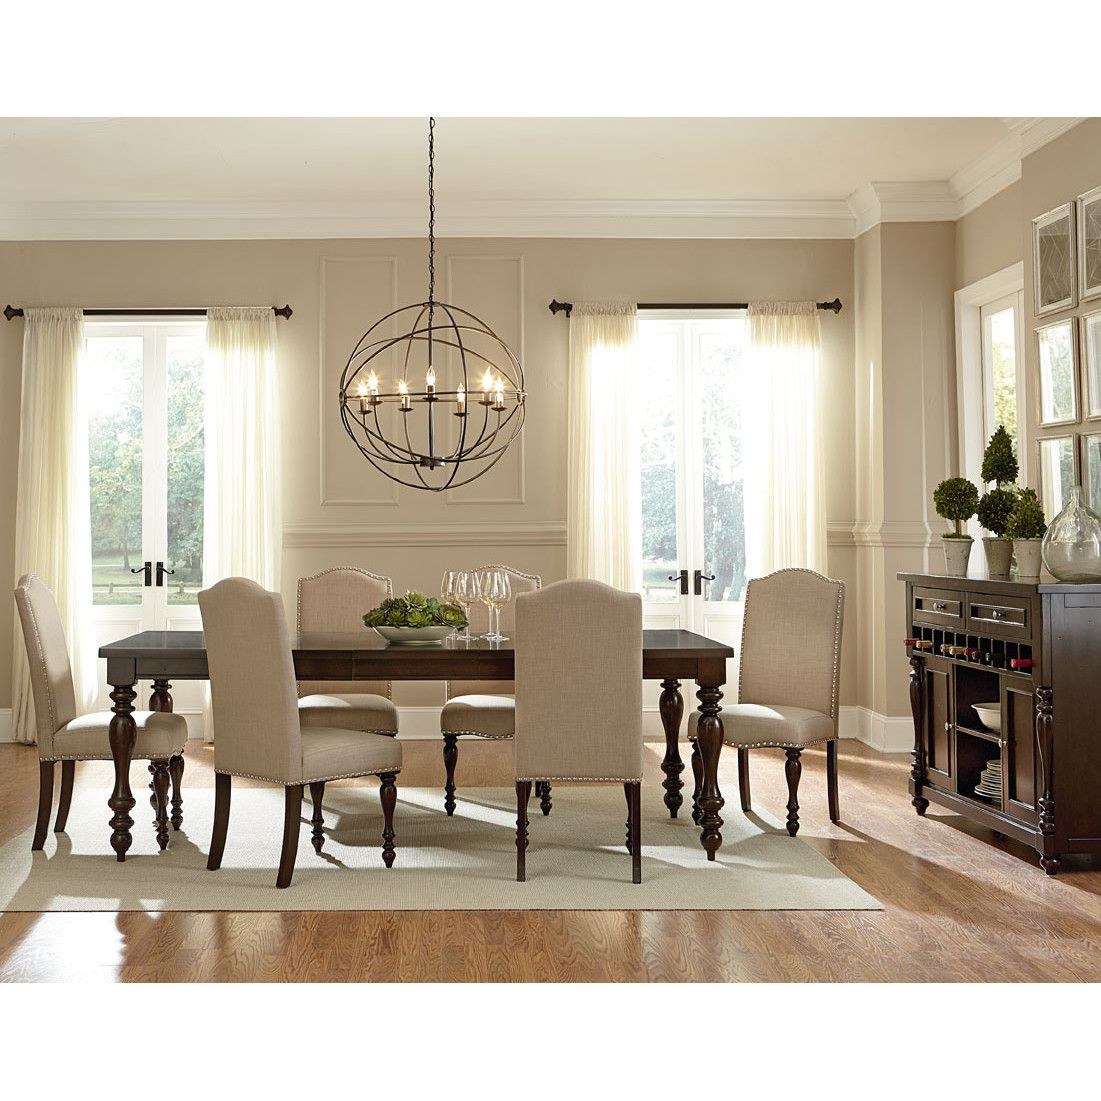 Shop Wayfair for Kitchen & Dining Room Sets to match every